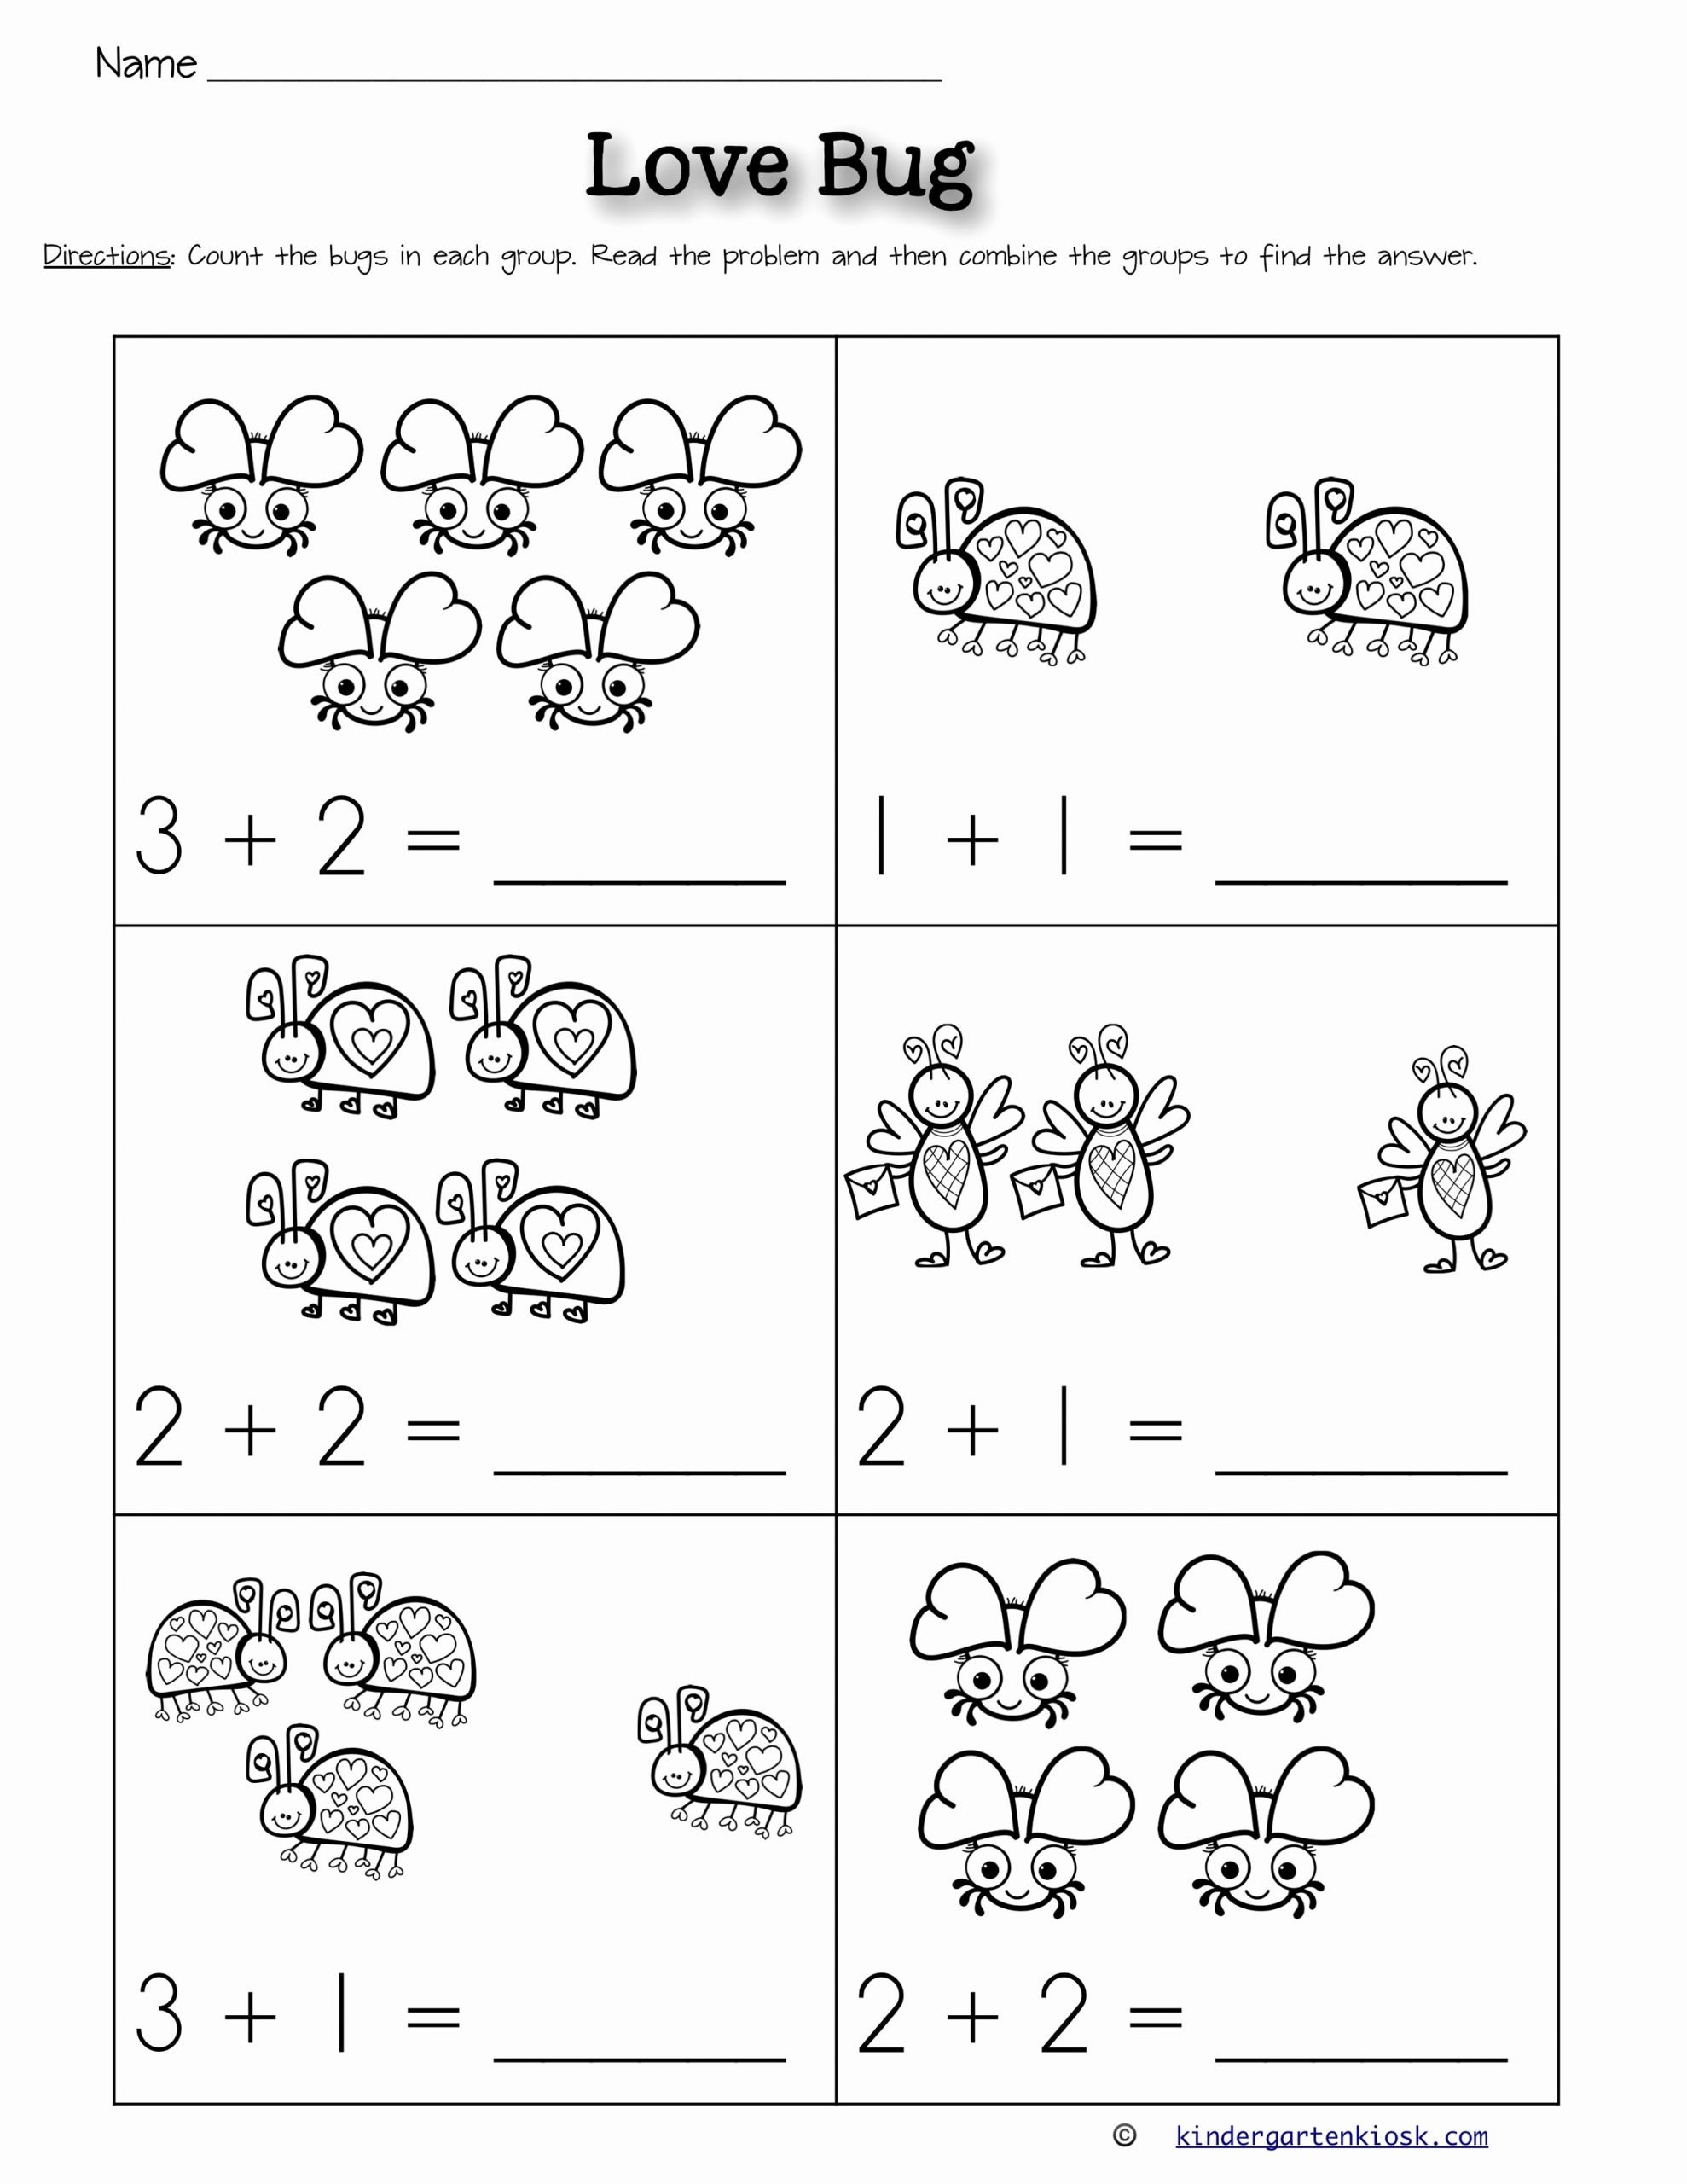 Addition Worksheets for Preschoolers with Pictures Kids Addition 0 5 Worksheets February